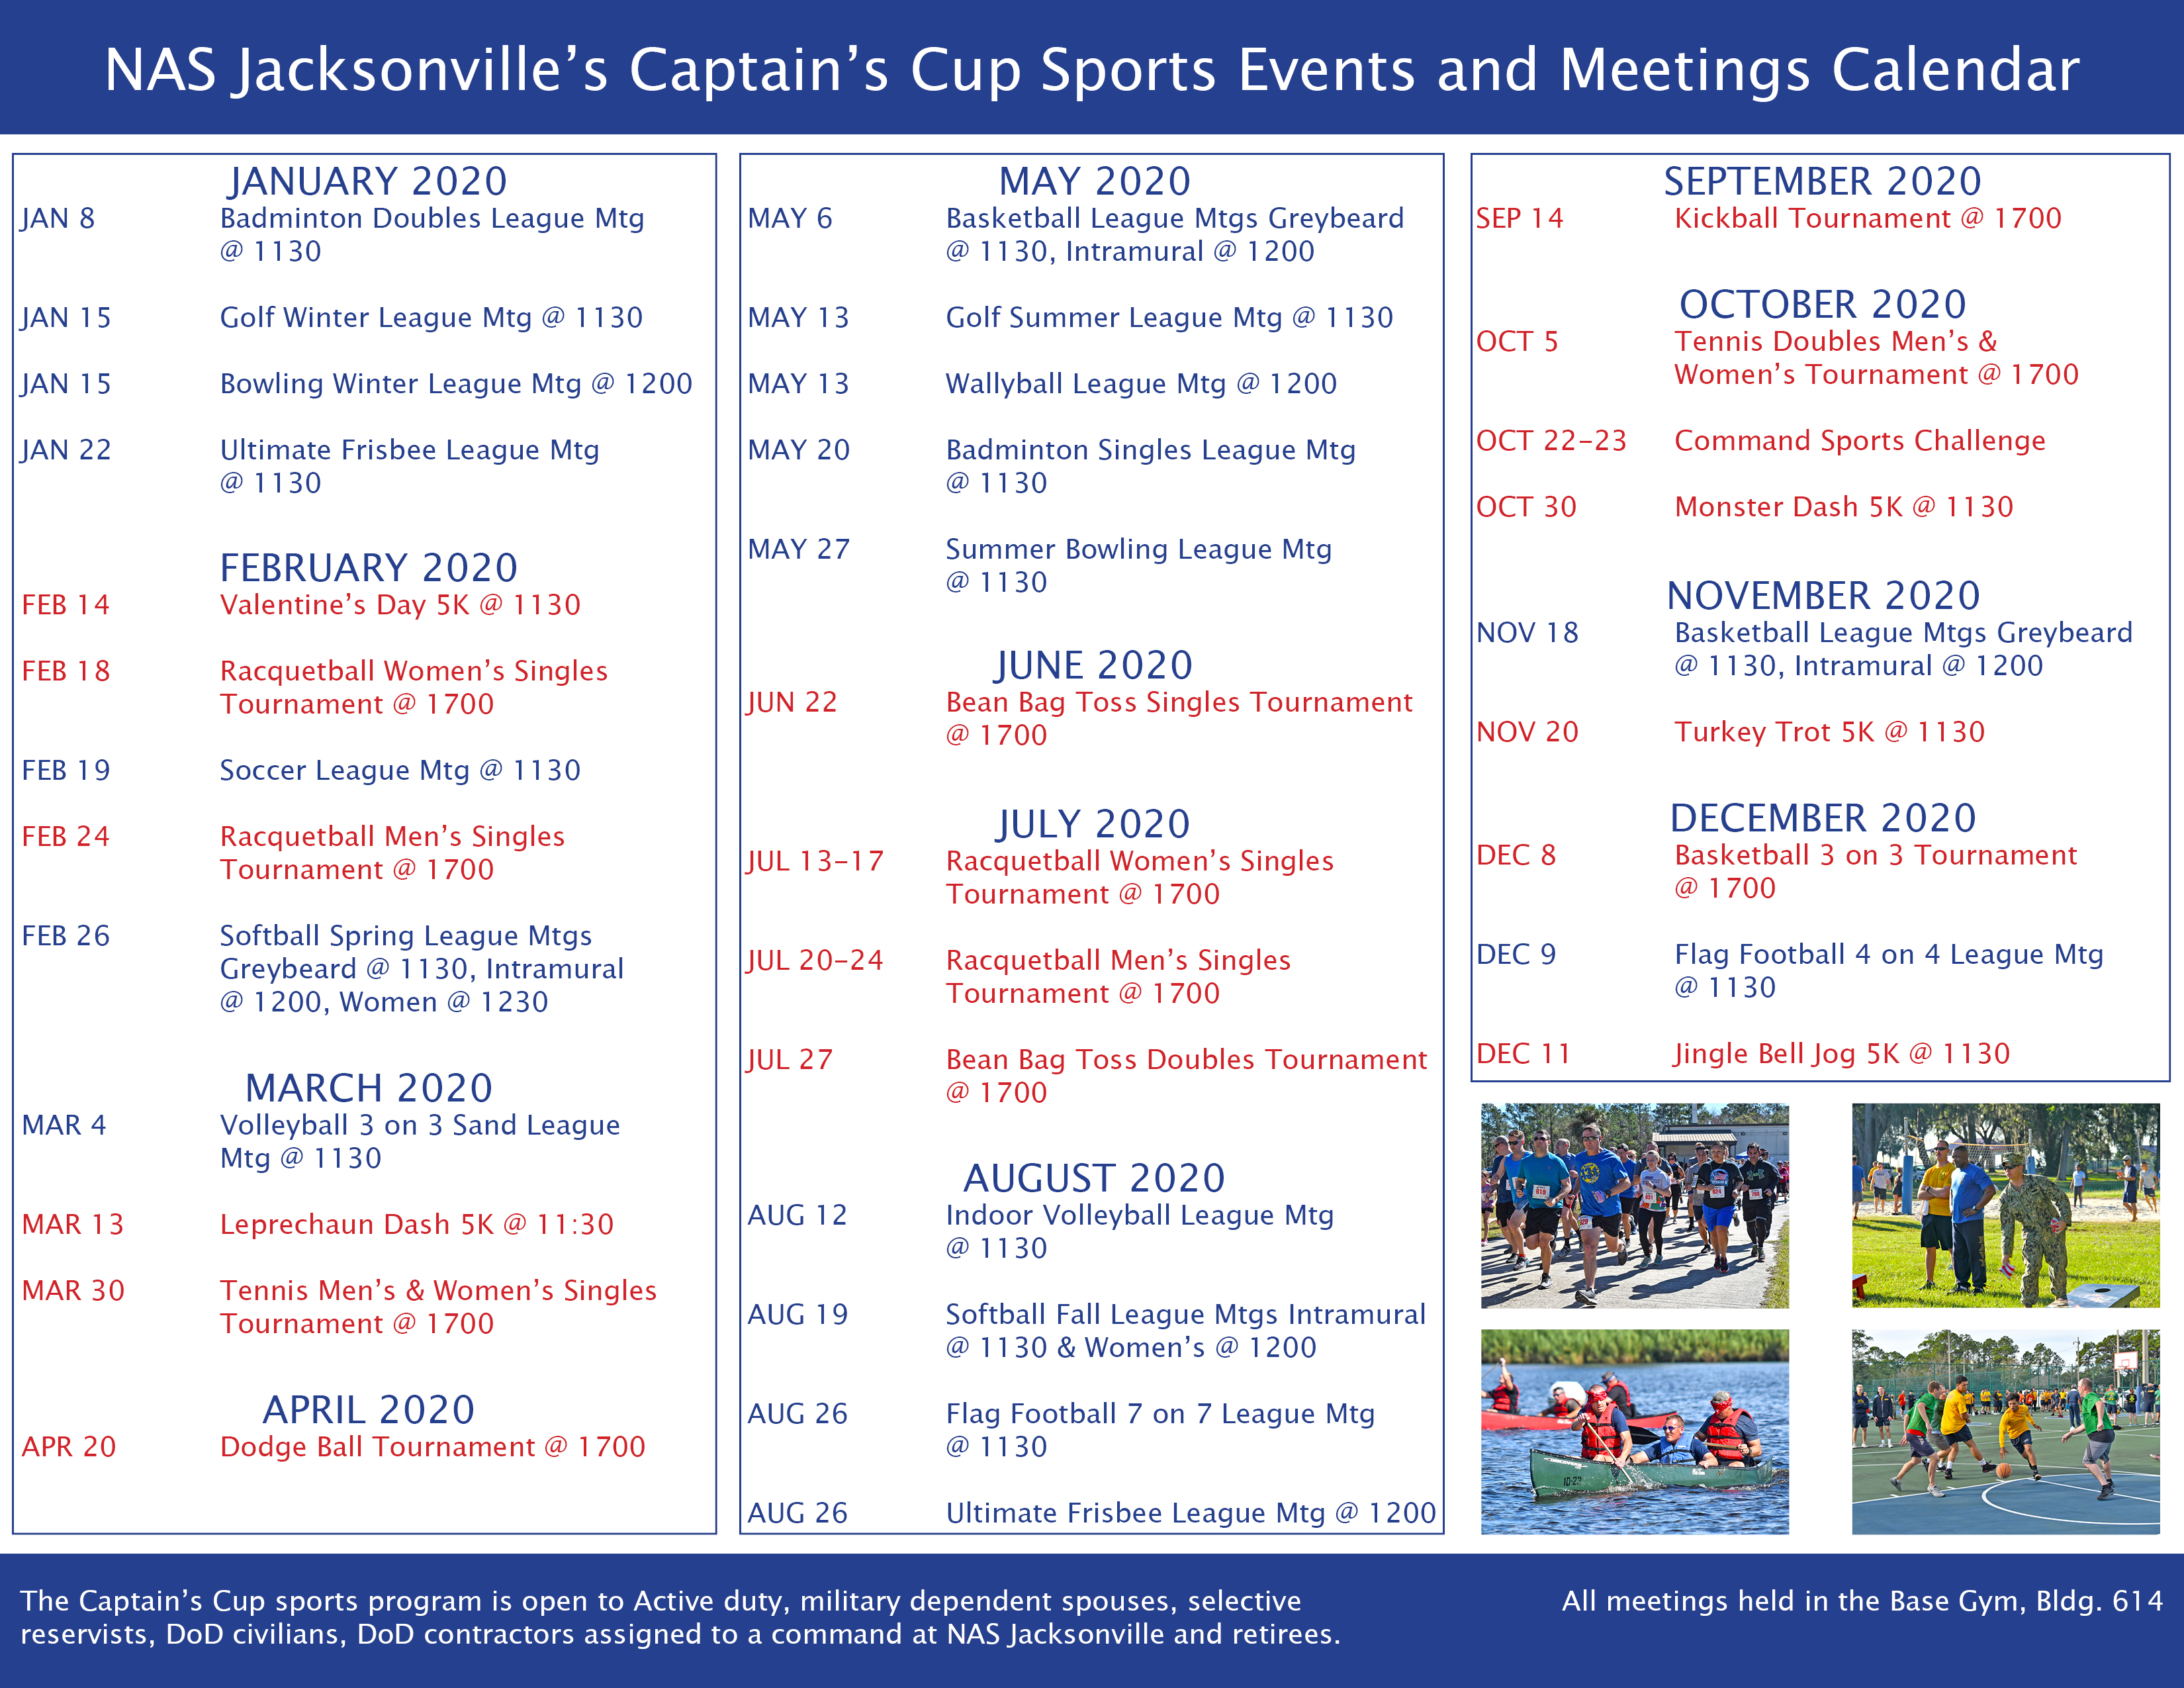 Captain's Cup Events & Meetings Calendar